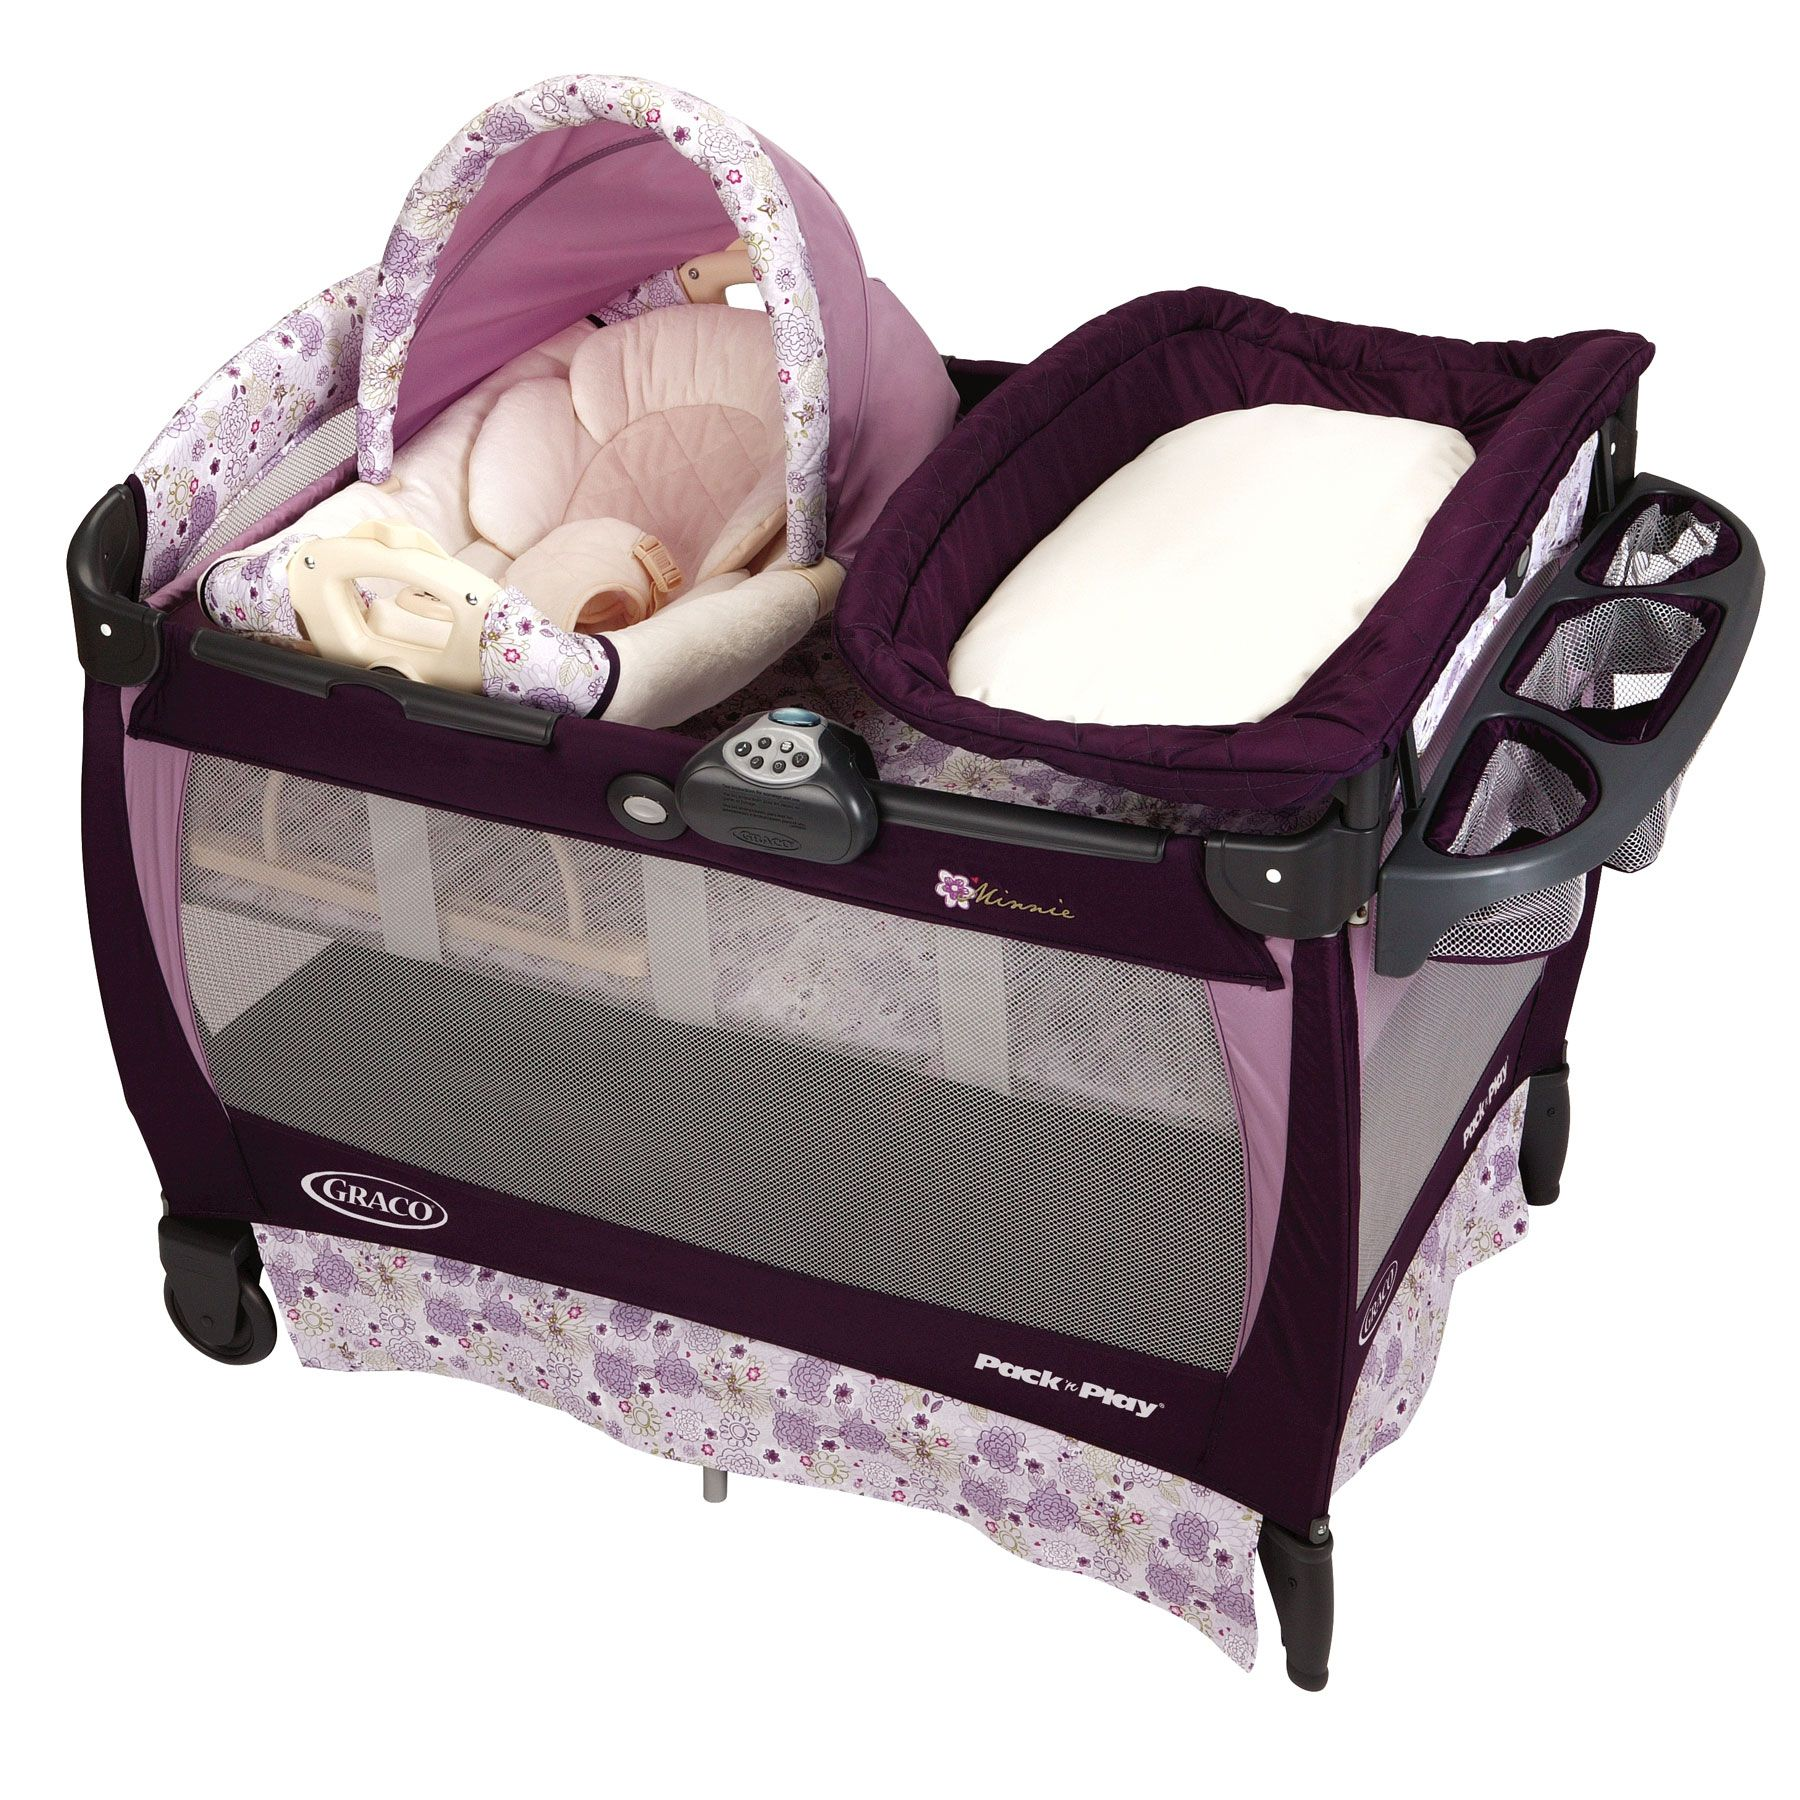 Pack N Play Bassinet Changing Table And Playpen Baby